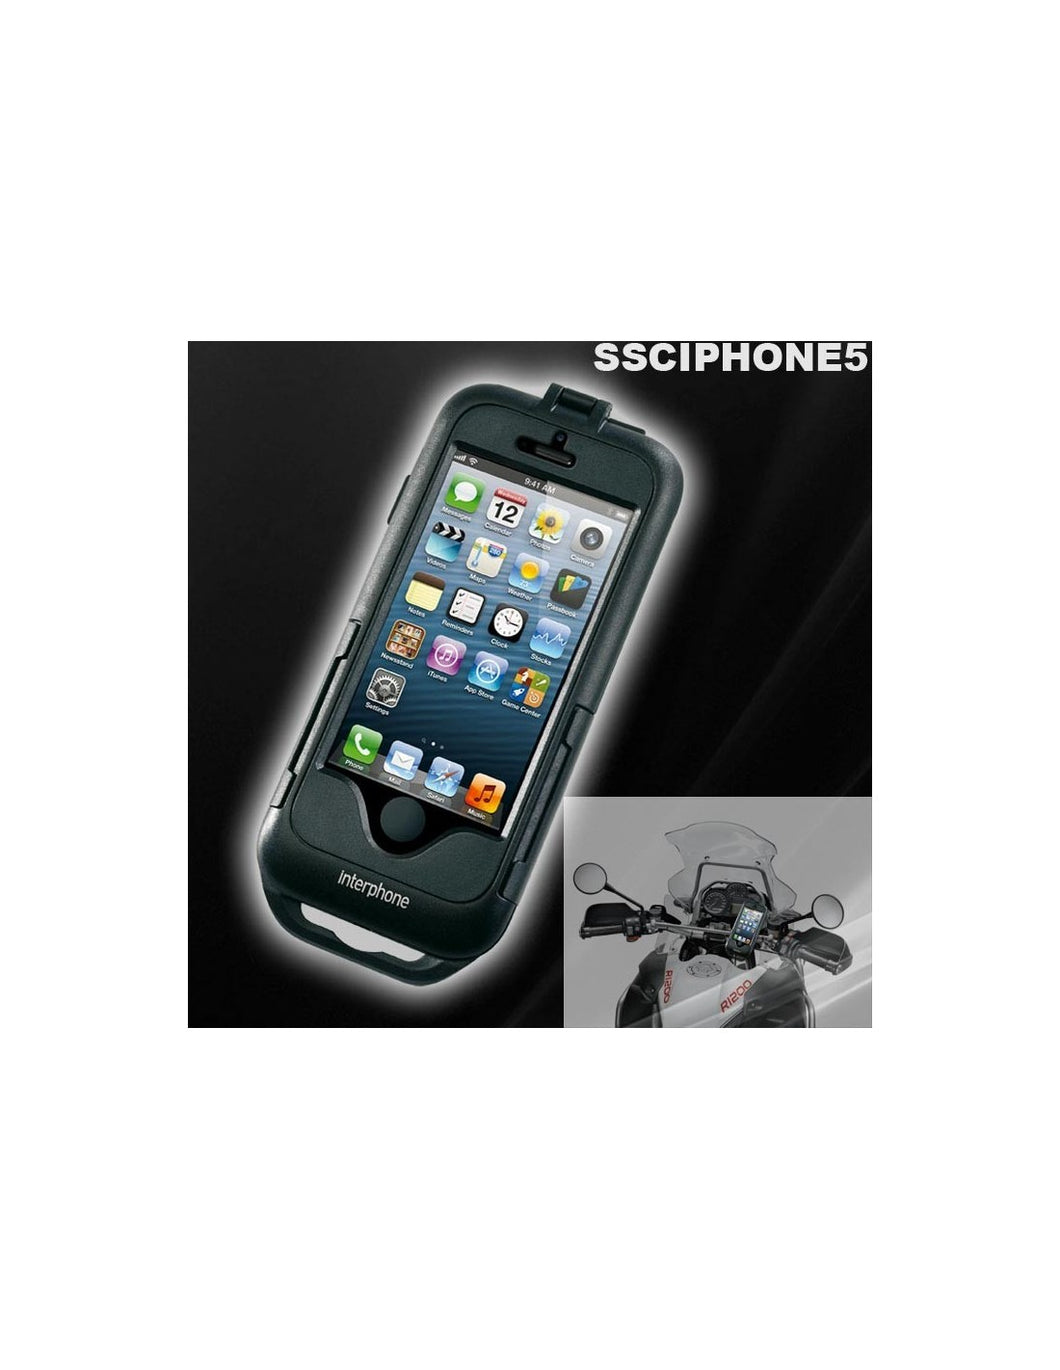 SMIPHONE5 CUSTODIA SUPPORTO PER IPHONE 5S/5 PER MOTO E BICI